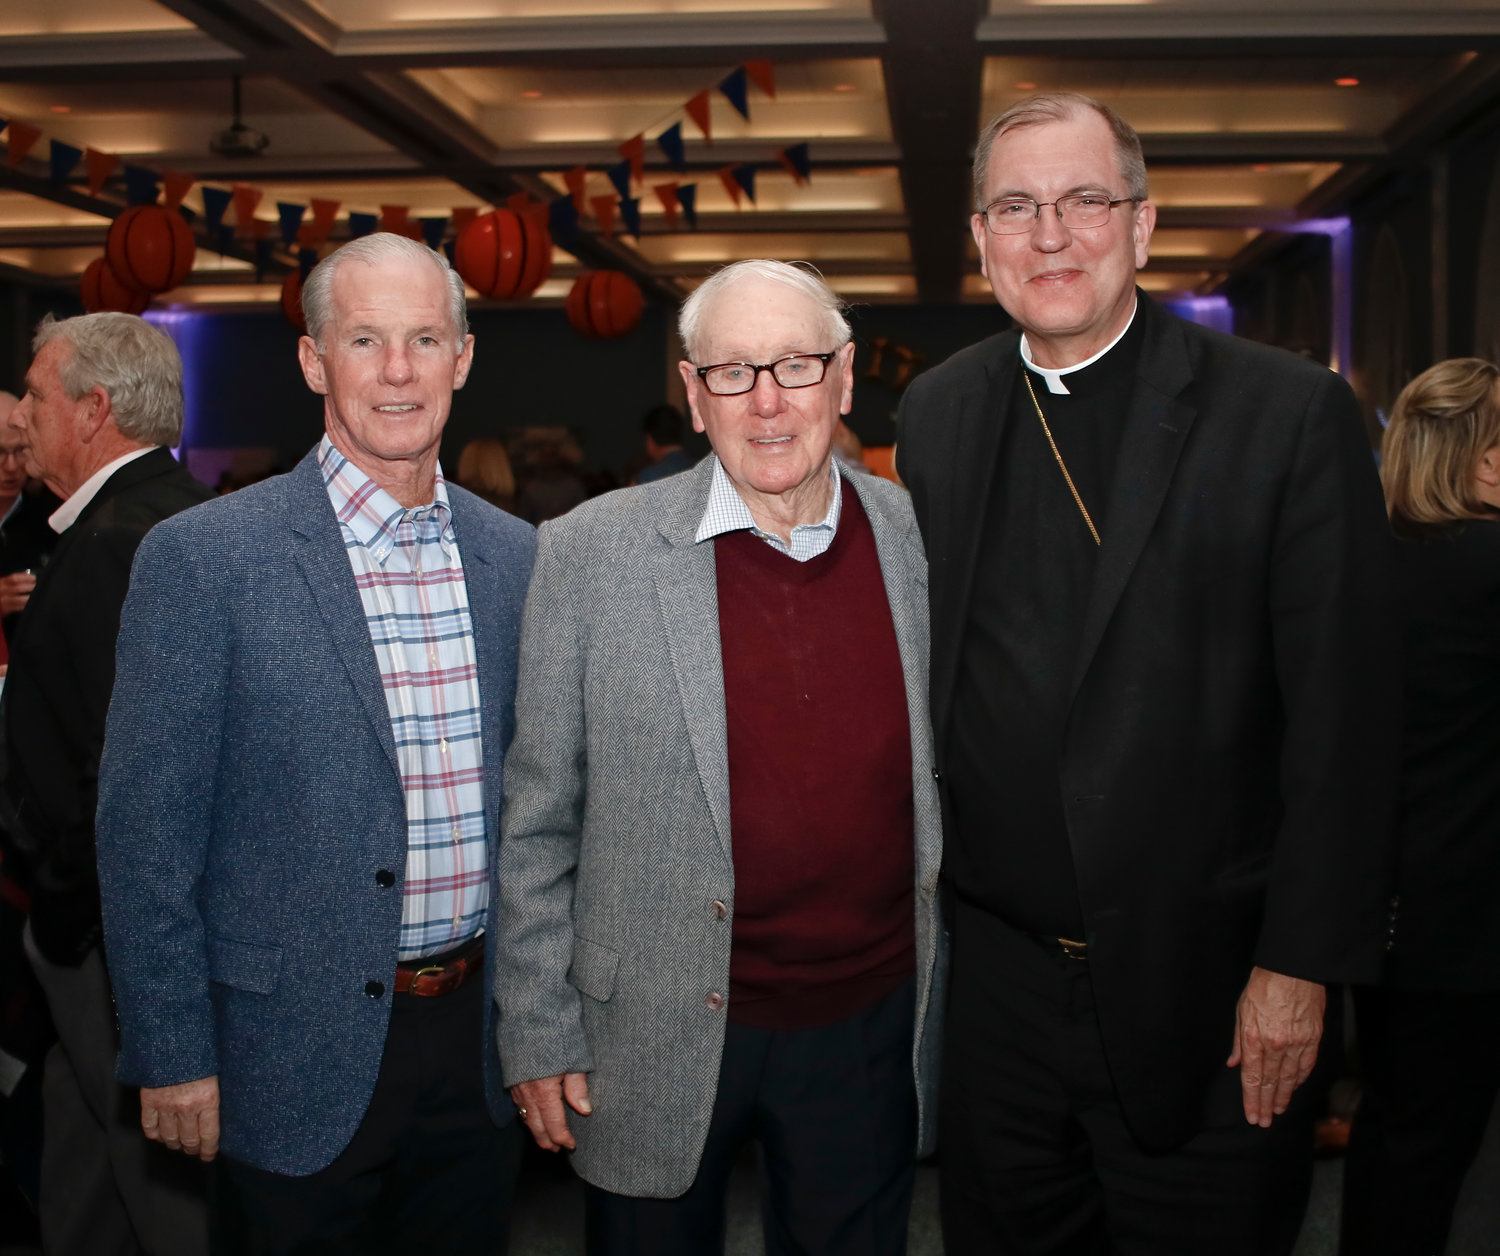 William Croutier Sr., center, poses with his son, Bill Croutier Jr. and Bishop John O. Barres. Croutier was surrounded by family, friends and comunity members at the celebration in his honor on Oct. 19 at St. Agnes Parish.